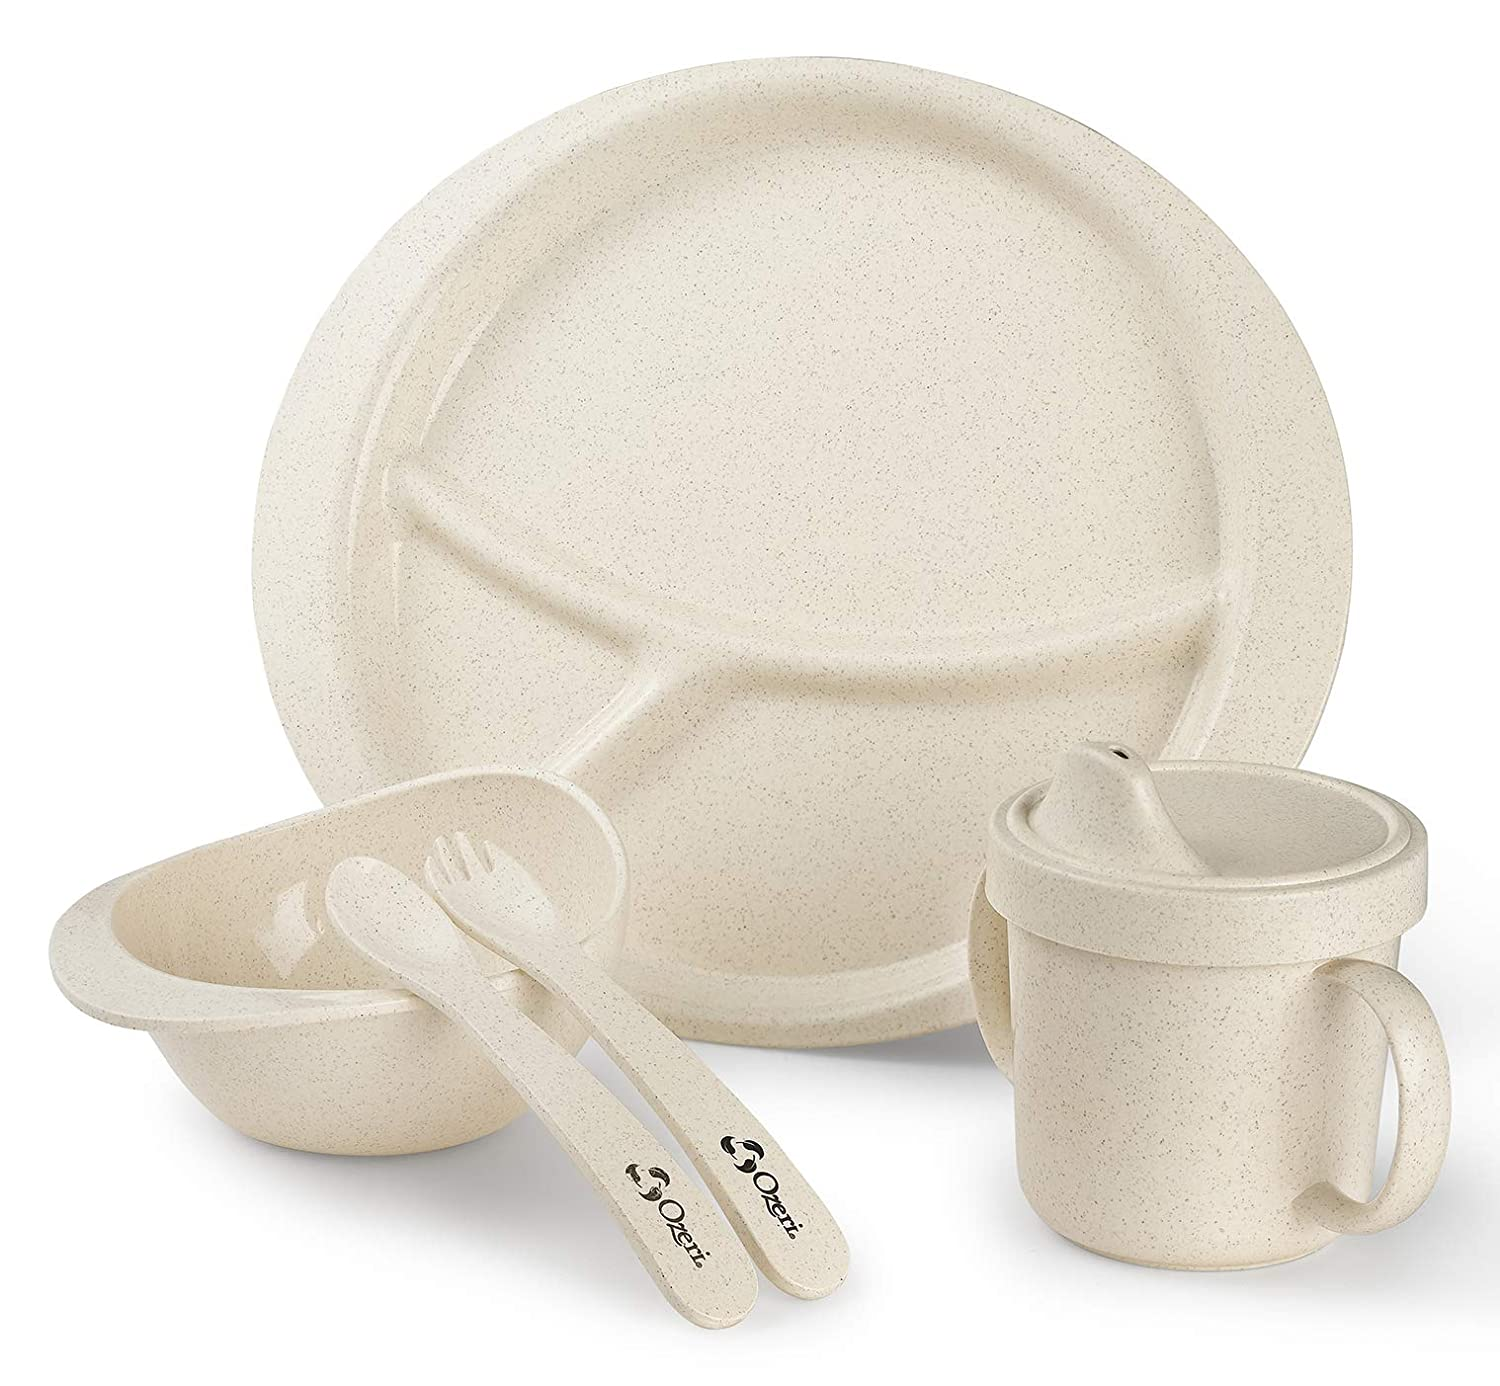 Ozeri DS1-G Earth Kids, 100% Made from a Plant Dish Set, One Size, Green